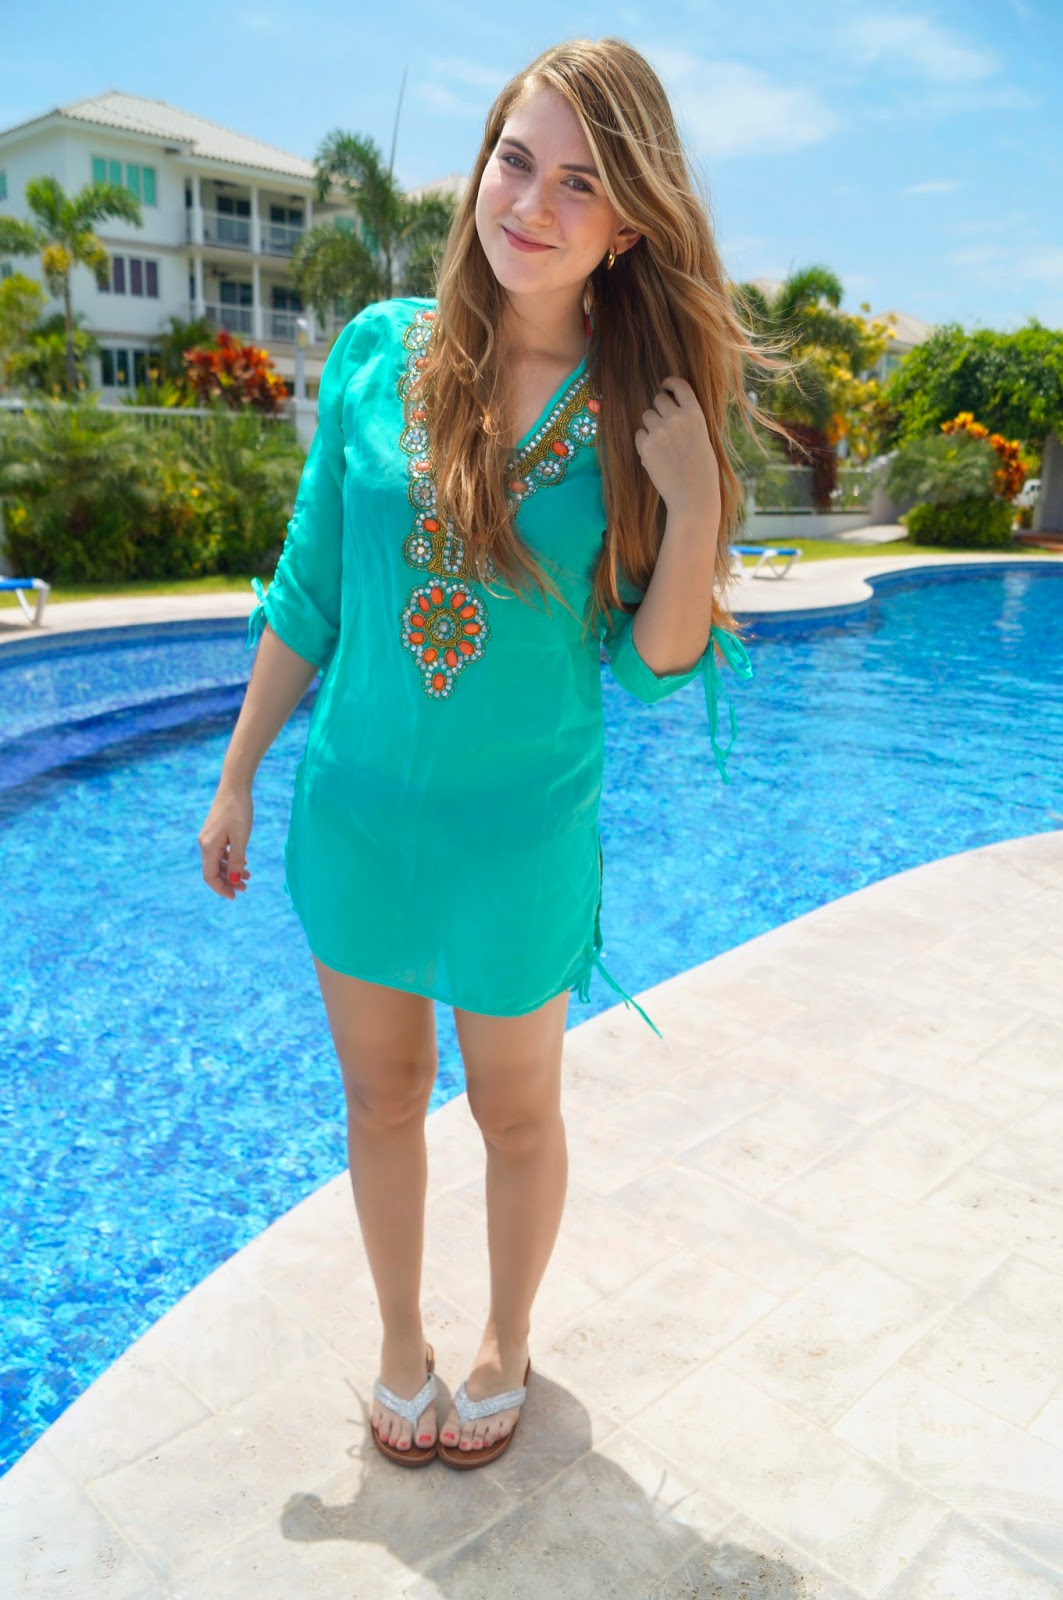 Beach Outfit, Pool Outfit, Swimsuit Coverup, Stevens Panama